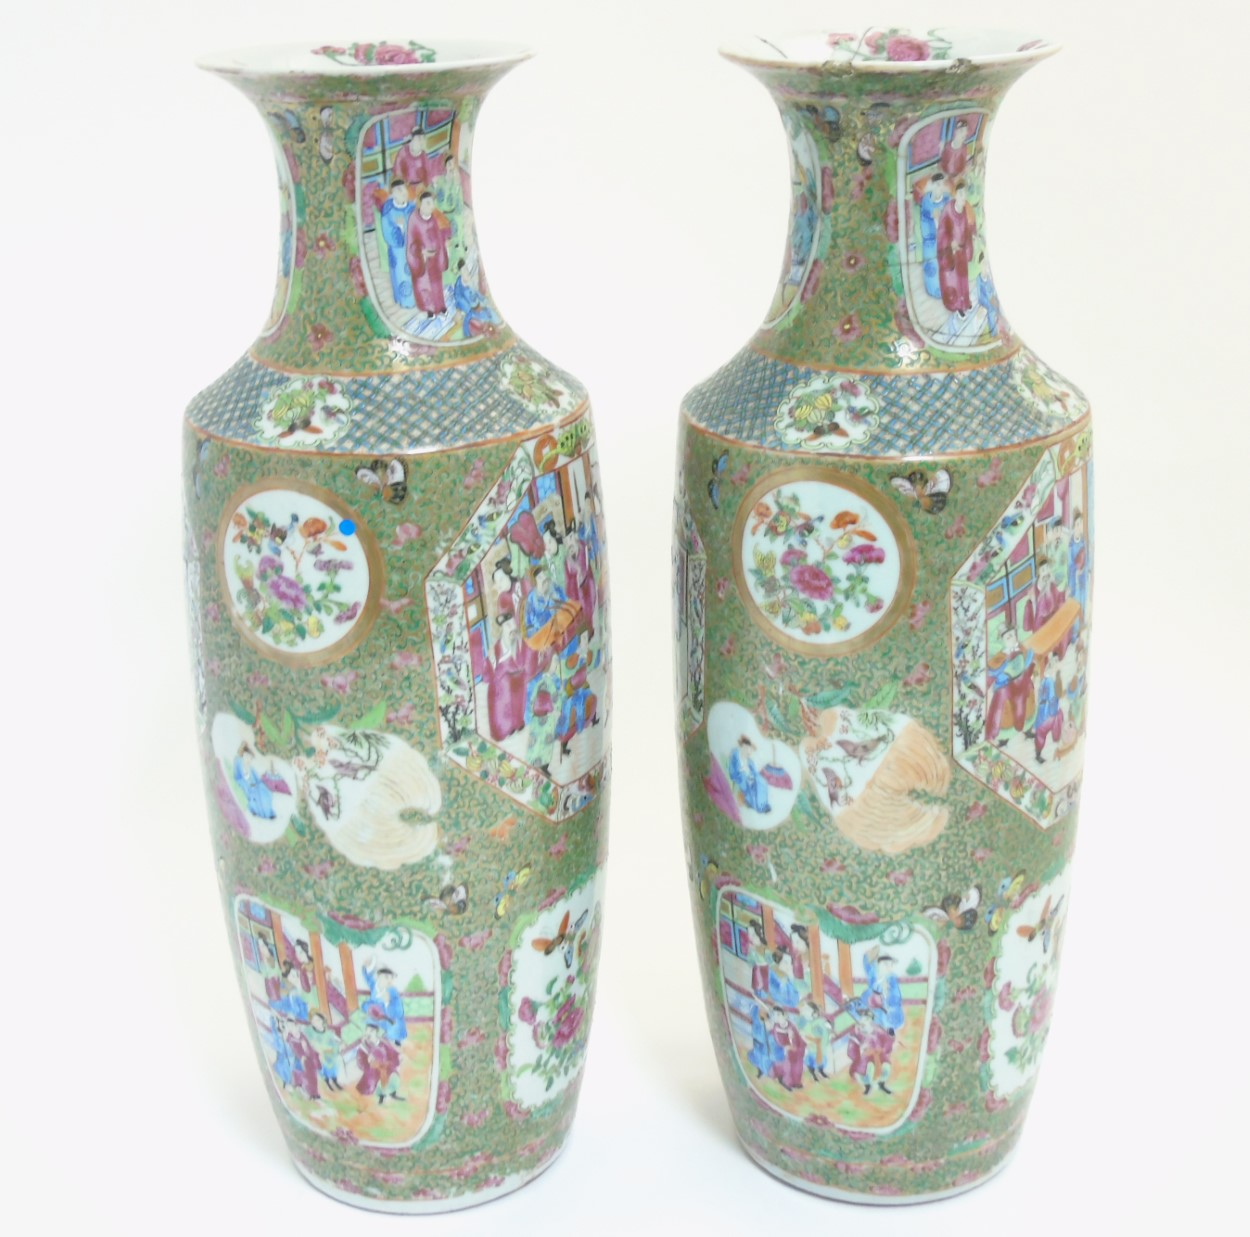 Lot 46 - A pair of large Chinese Cantonese / Rose Medallion baluster vases,